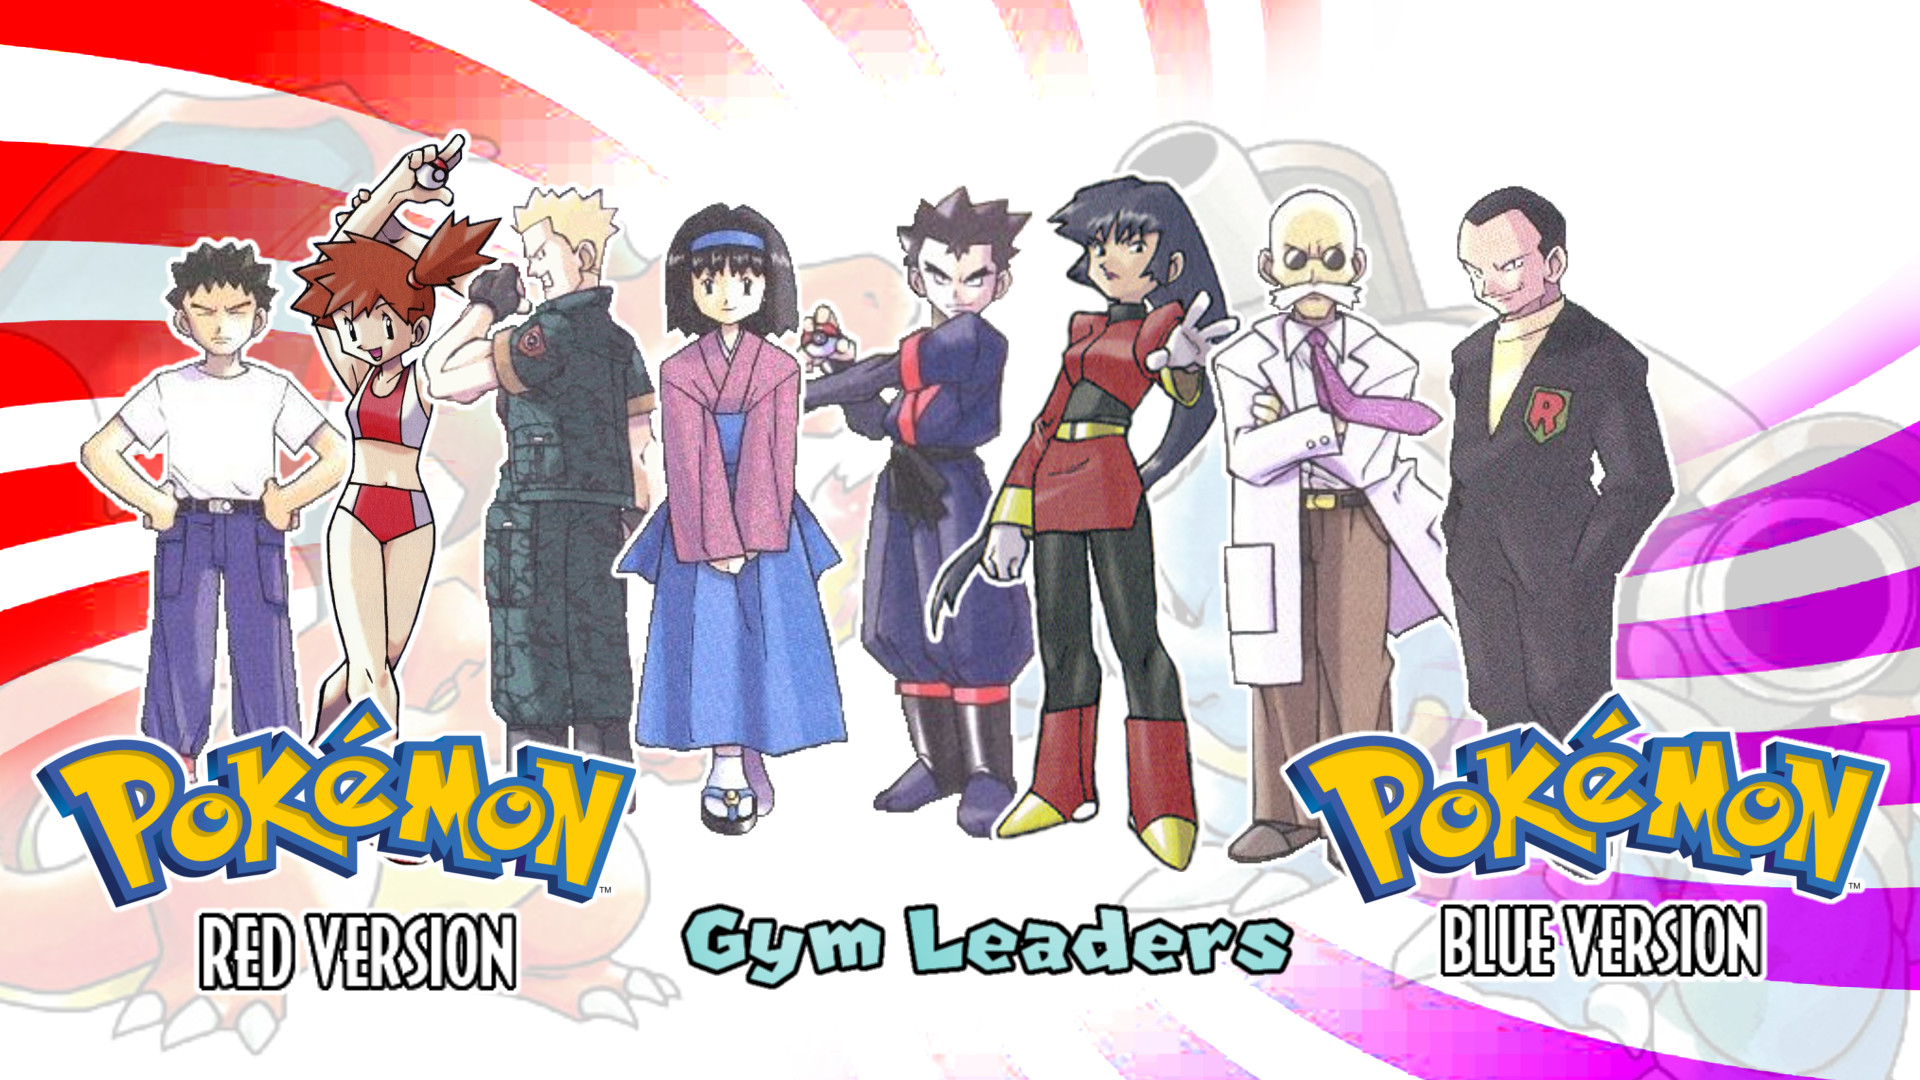 Res: 1920x1080, MattPlaysVG 1 0 Pokemon Red and Blue- Gym Leaders Wallpaper by MattPlaysVG